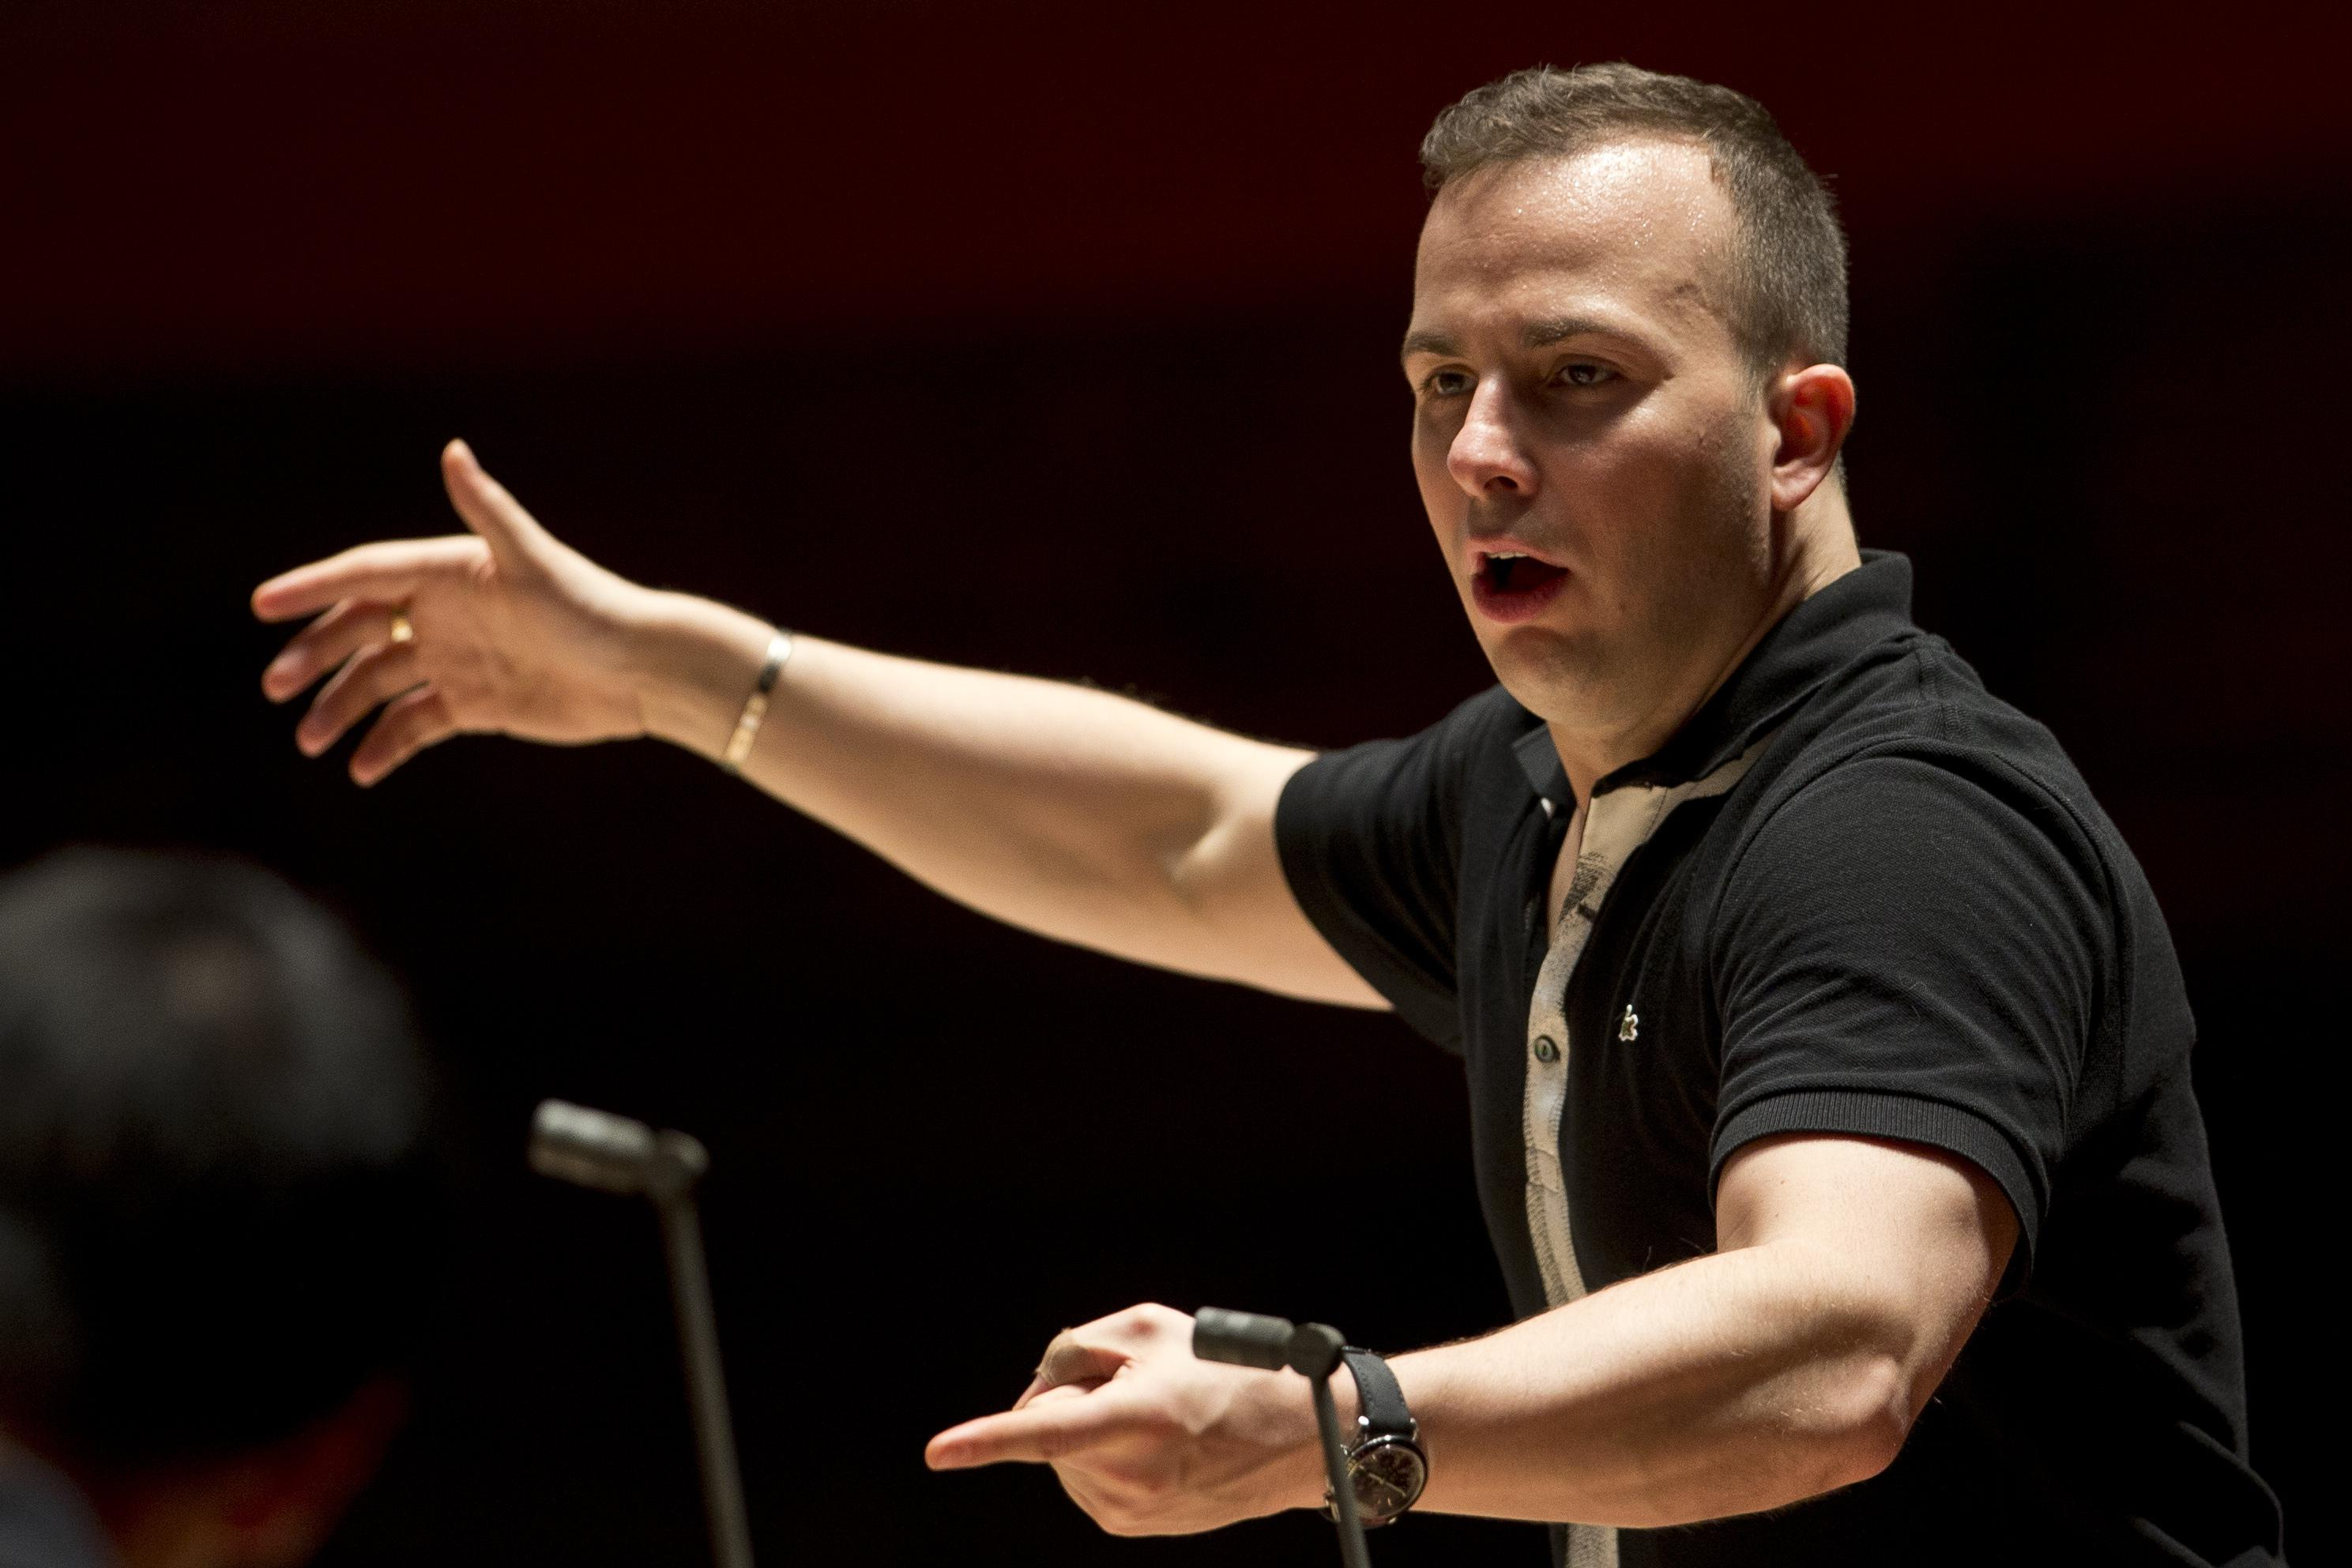 Born to Conduct: Film charts Met music director's ascent